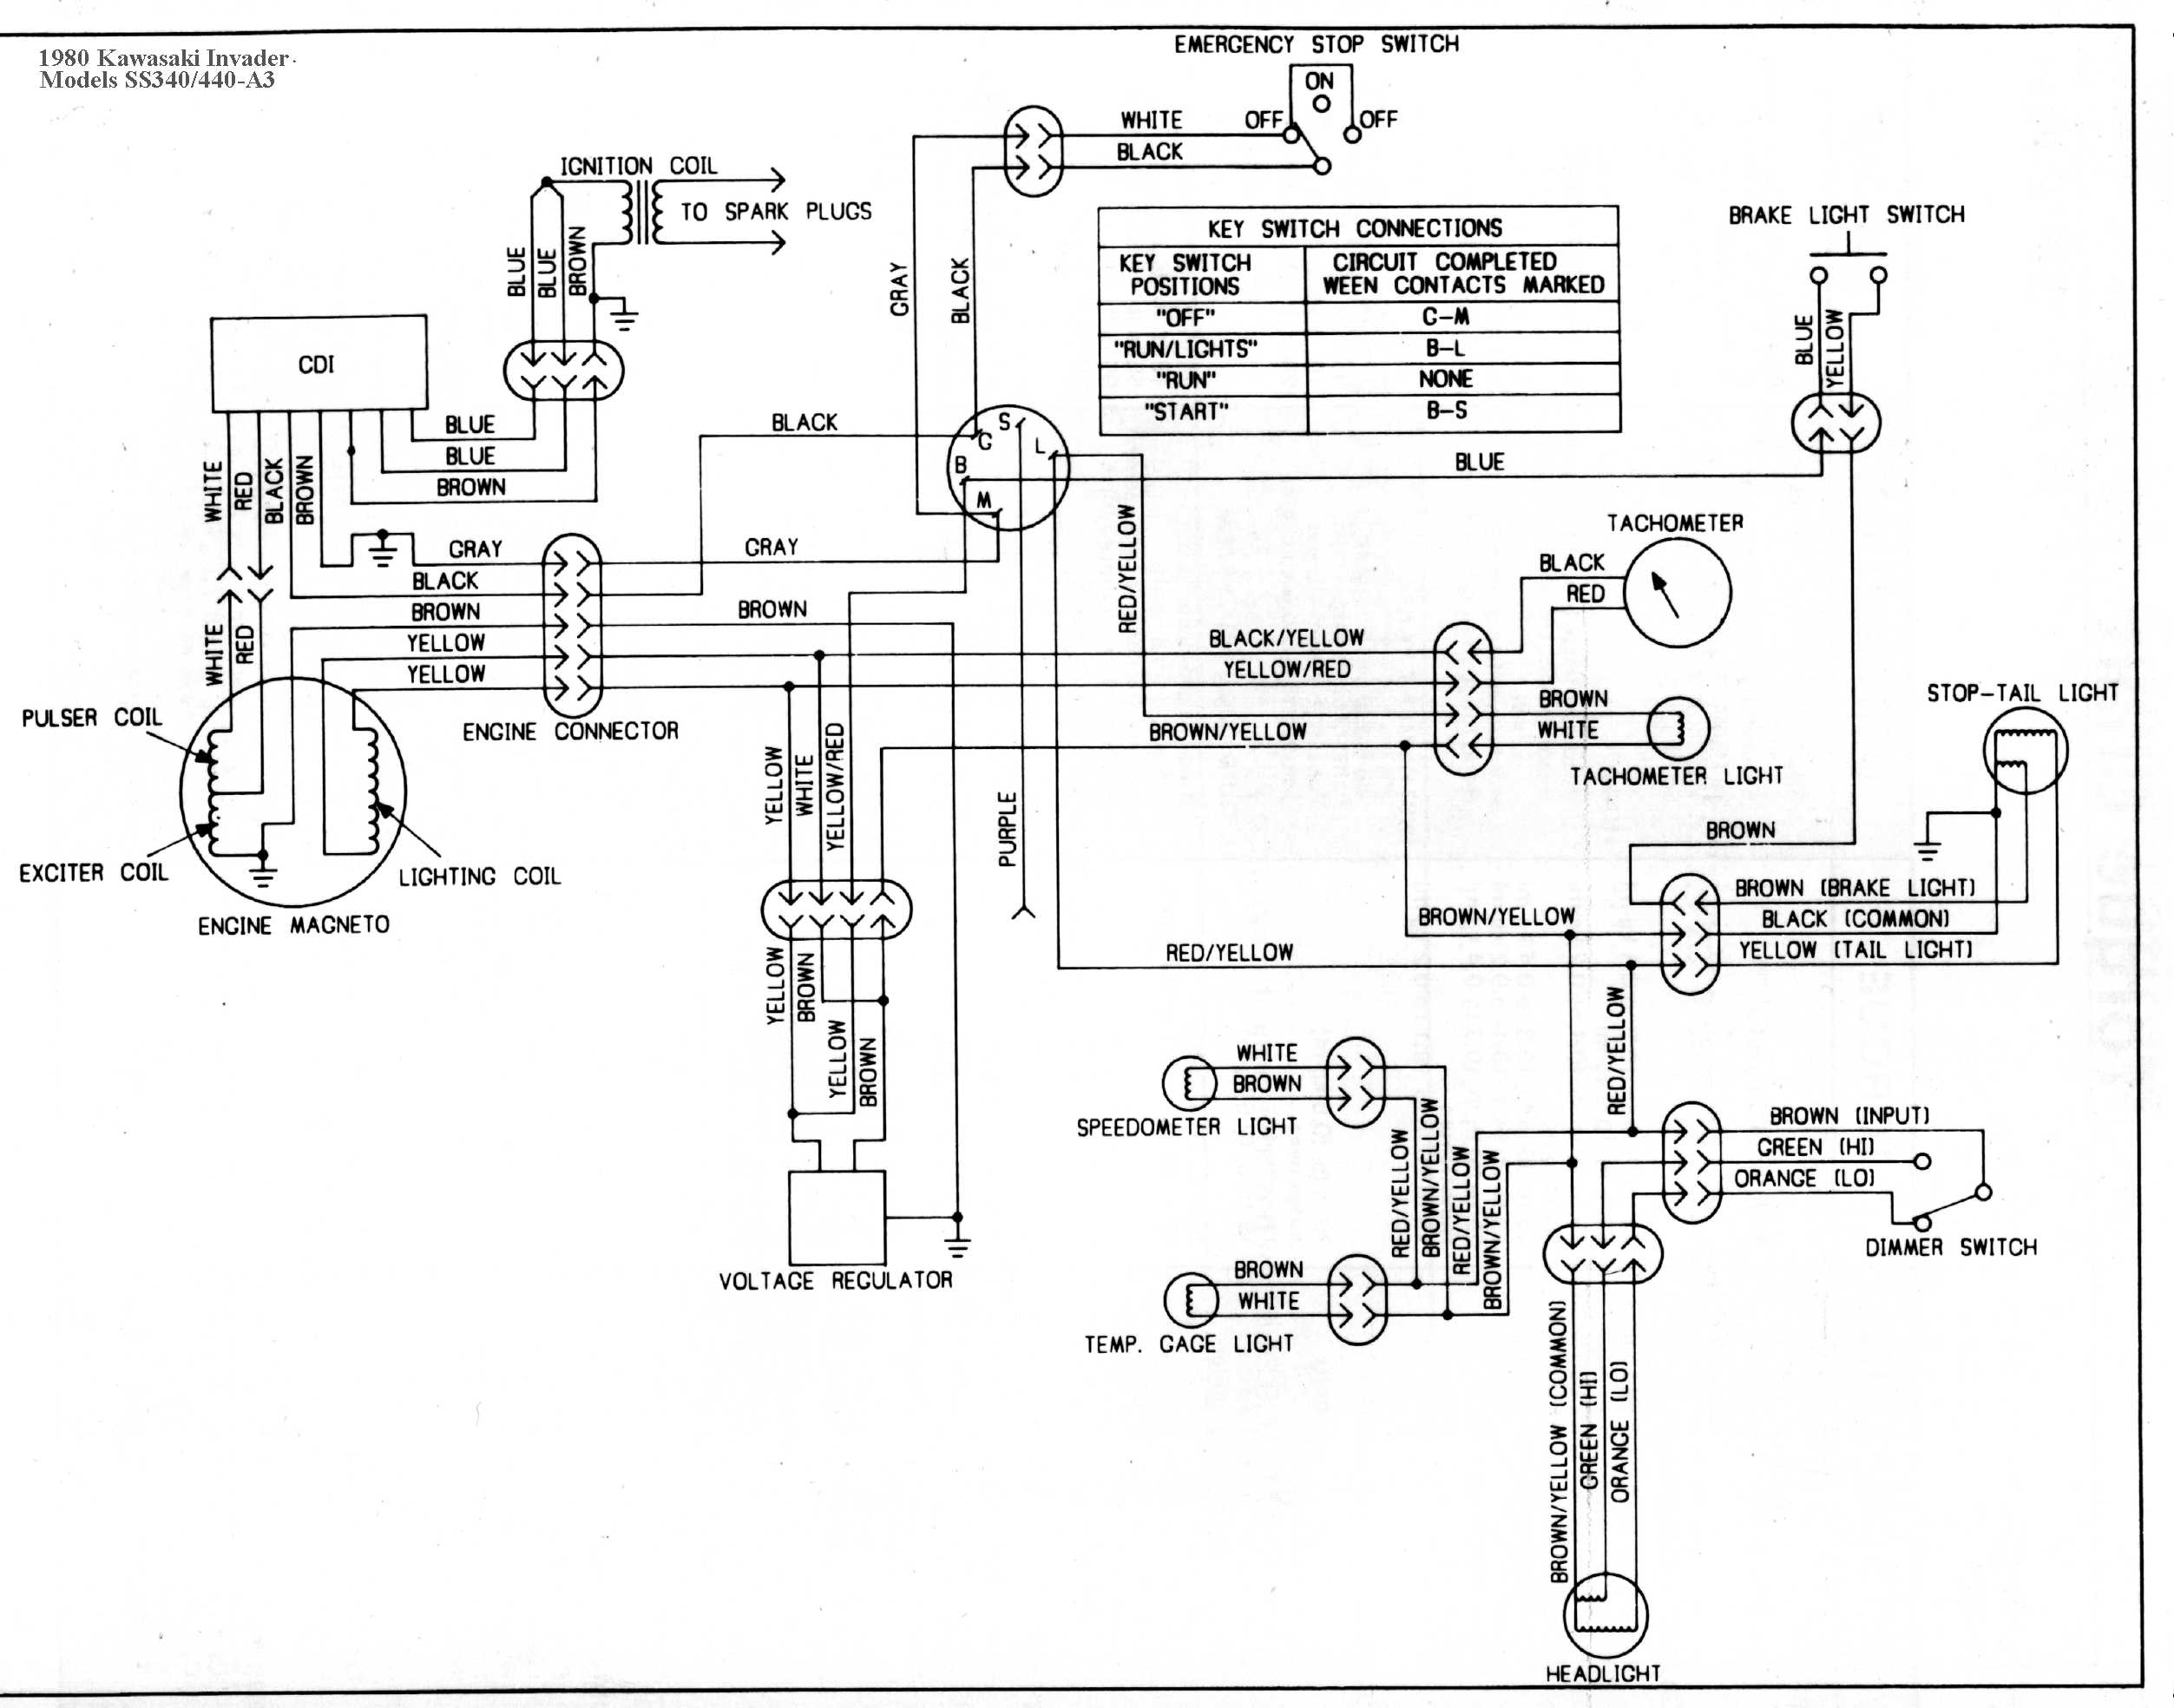 ss340a3 kawasaki invader snowmobile wiring diagrams kawasaki motorcycle wiring diagrams at edmiracle.co